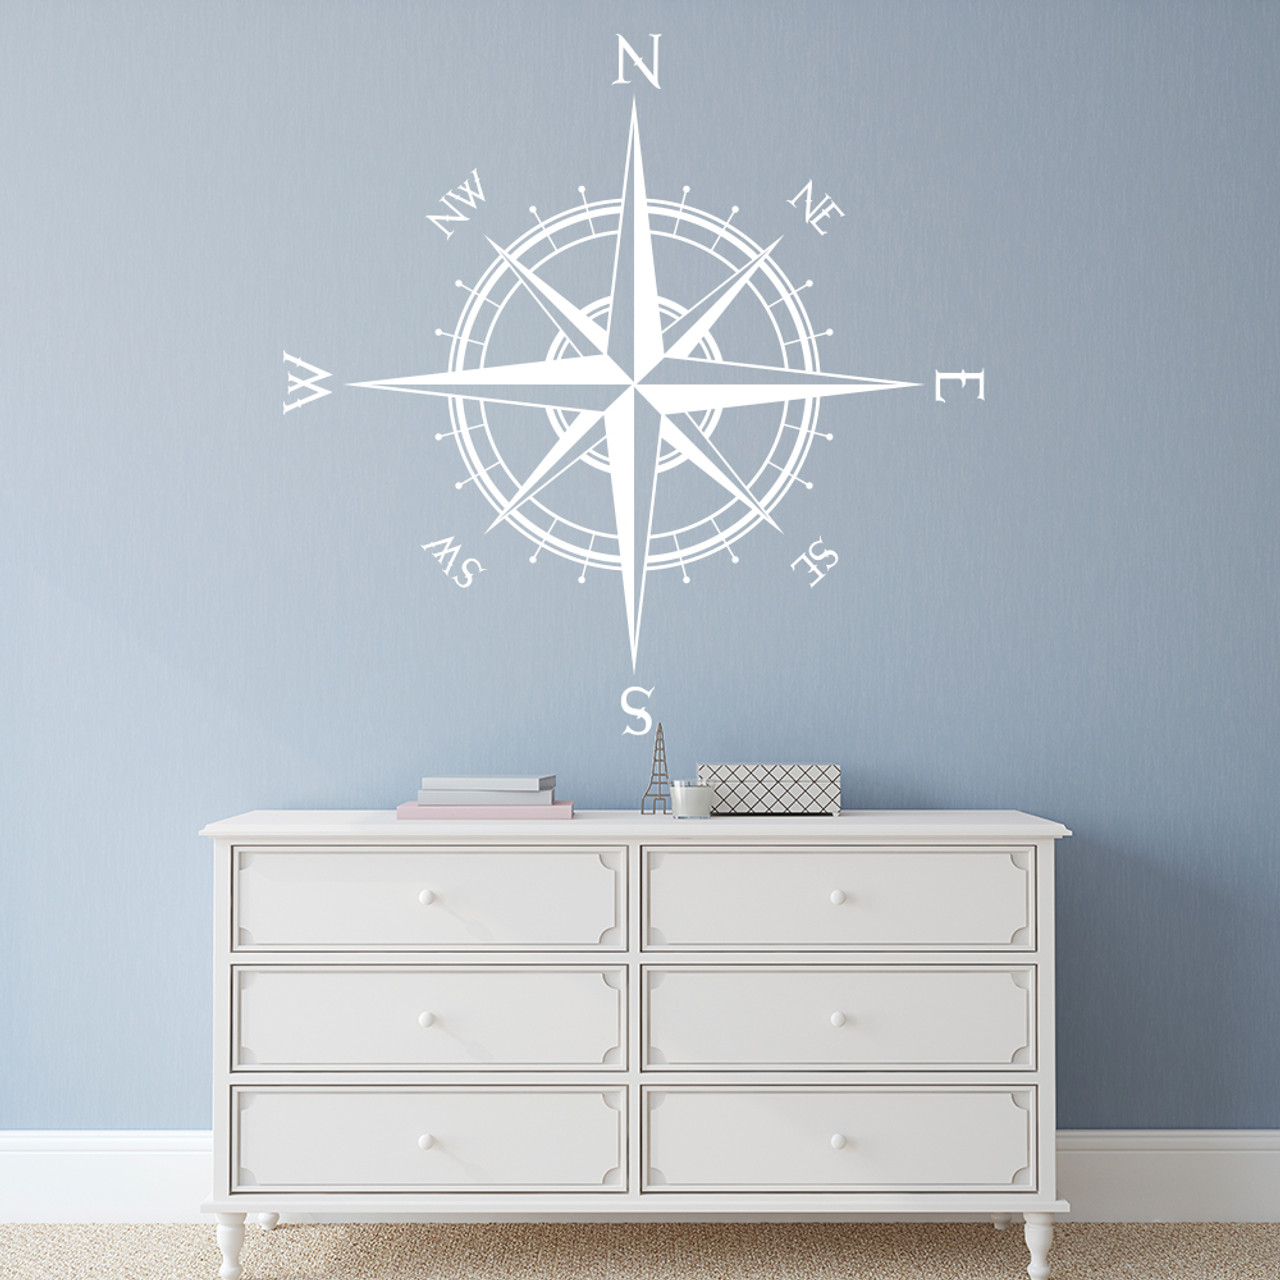 The Captain compass rose vinyl wall decal in white